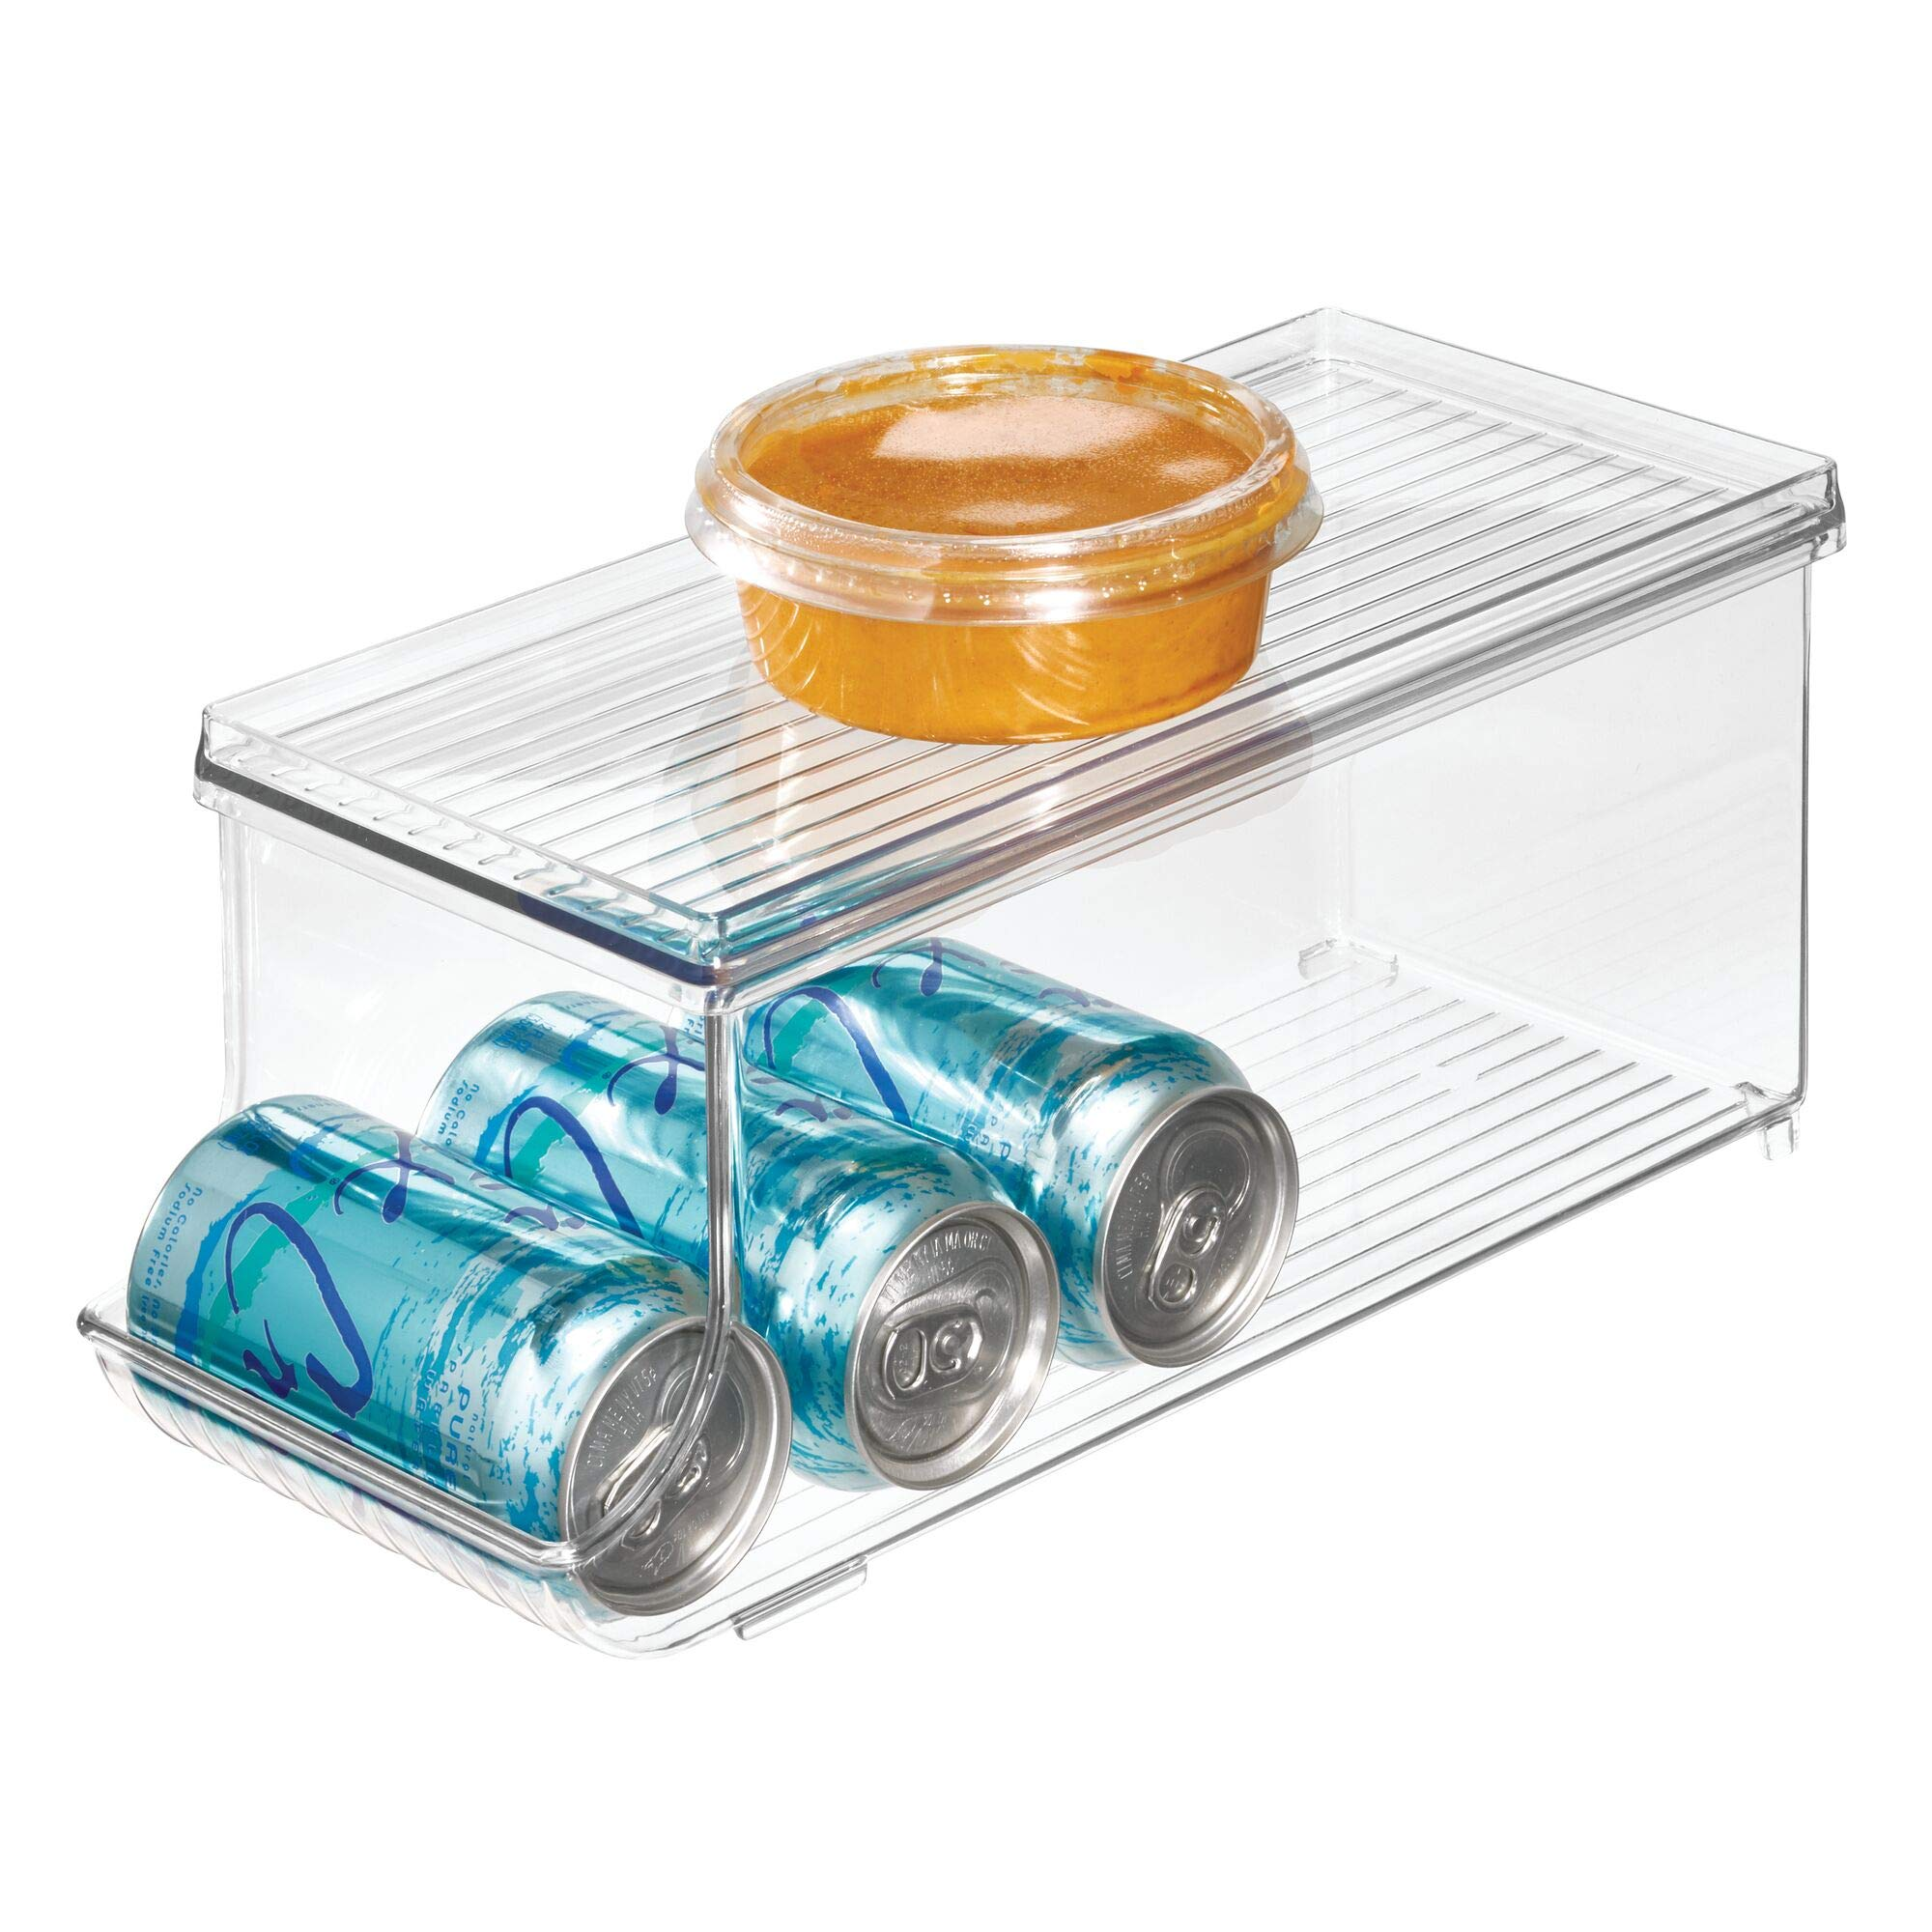 """iDesign Plastic Canned Food and Soda Can Organizer with Lid for Refrigerator, Freezer, and Pantry for Organizing Tea, Pop, Beer, Water, BPA-Free, 13.75"""" x 5.75"""" x 5.75"""", Clear"""